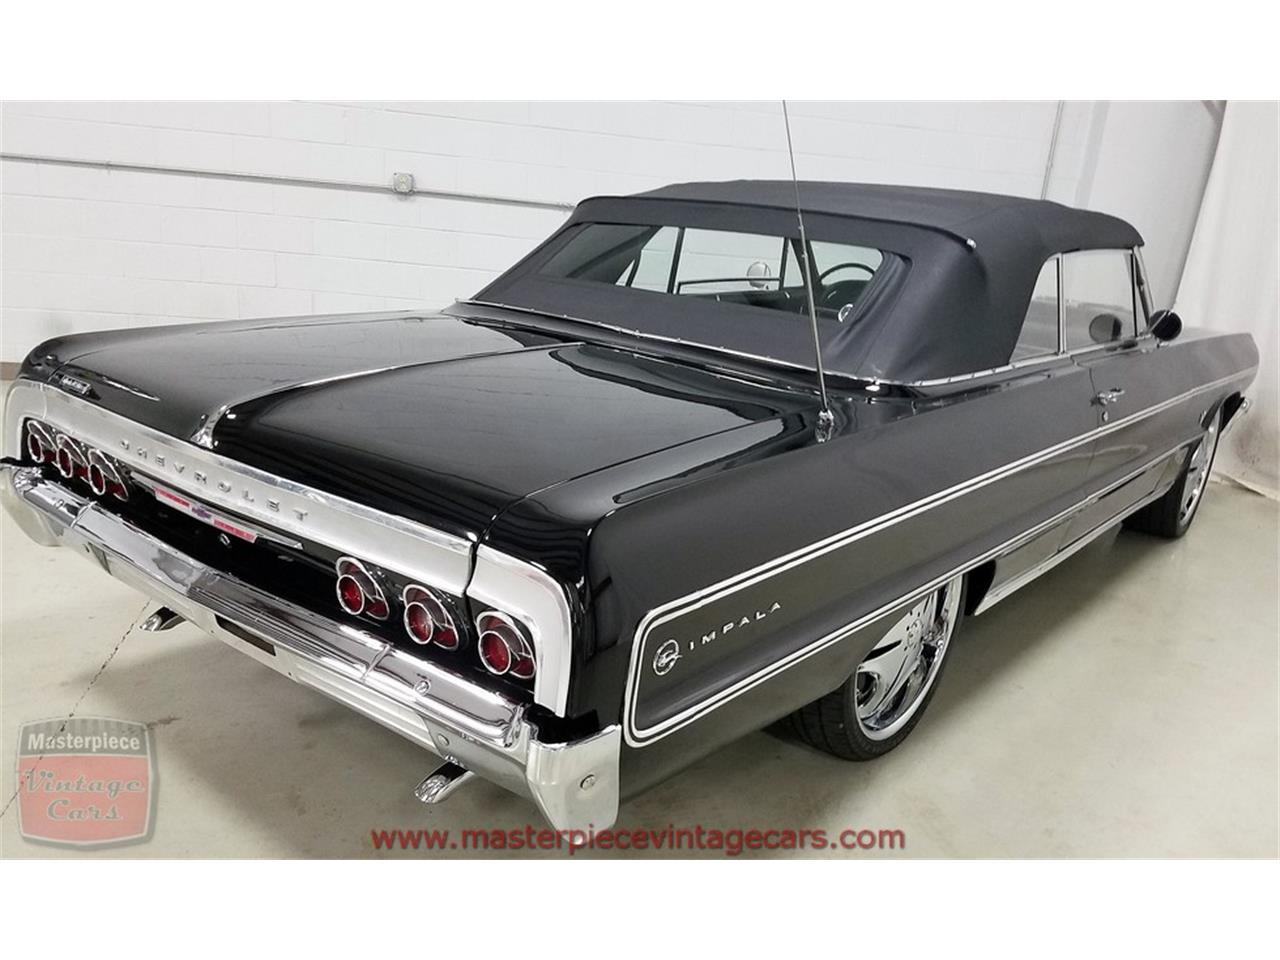 Large Picture of 1964 Chevrolet Impala located in Indiana - $44,900.00 Offered by Masterpiece Vintage Cars - LBXB